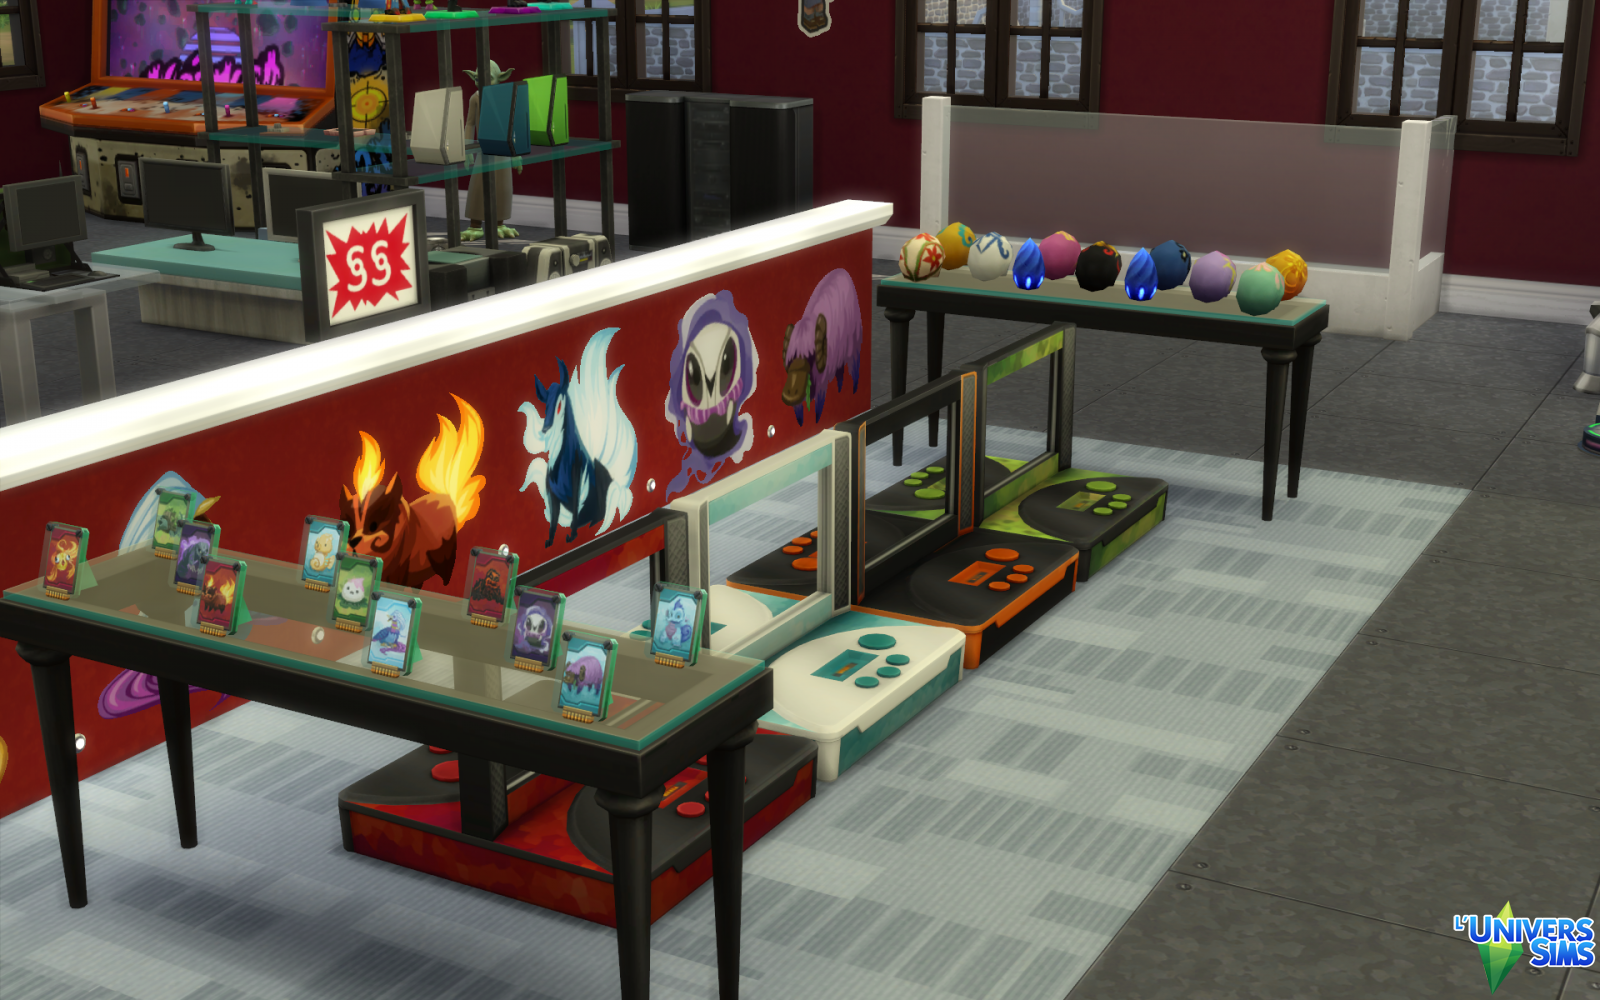 Le magasin GeekSims